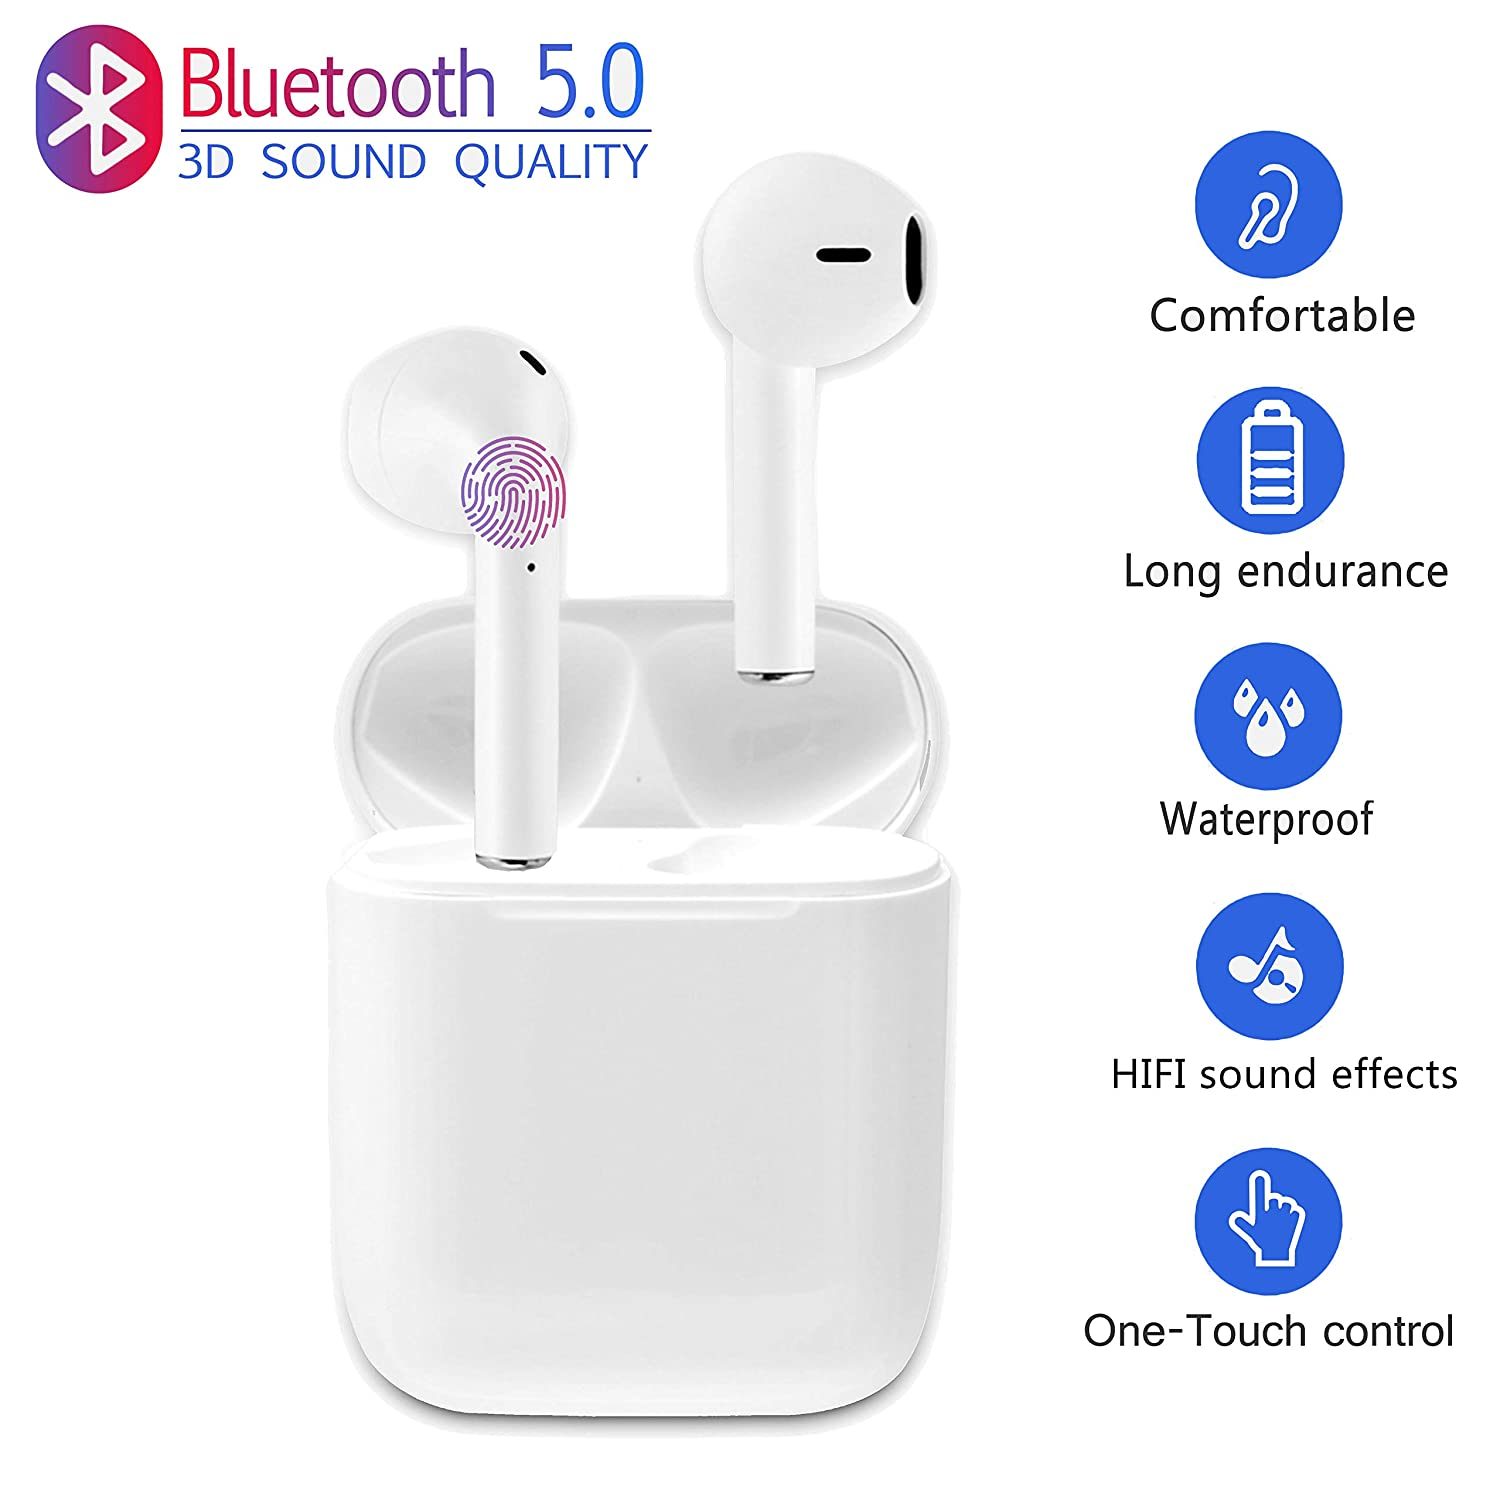 Wireless Earbuds Bluetooth 5.0 Headsets Waterproof HD Stereo Noise Cancelling Headphones with Built-in Mic and Fast Charging Case For Airpods Iphone X Xs Max Samsung Apple Android